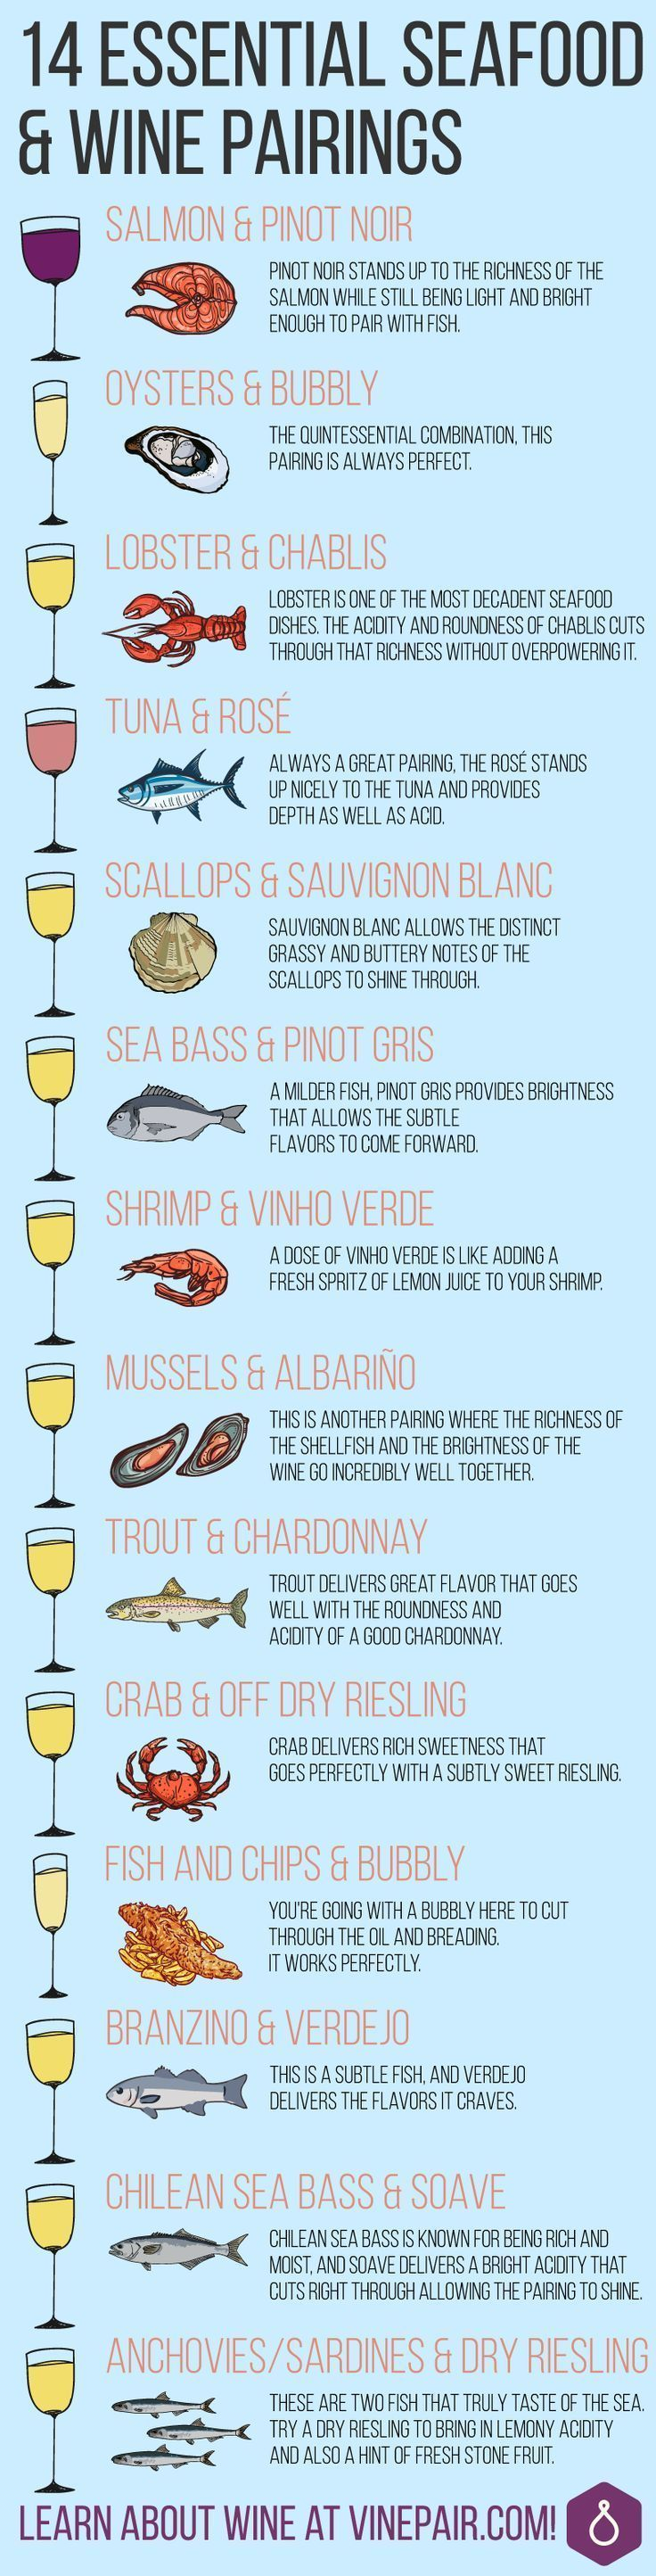 24 best Wine Appreciation images on Pinterest | Alcohol, Beds and ...